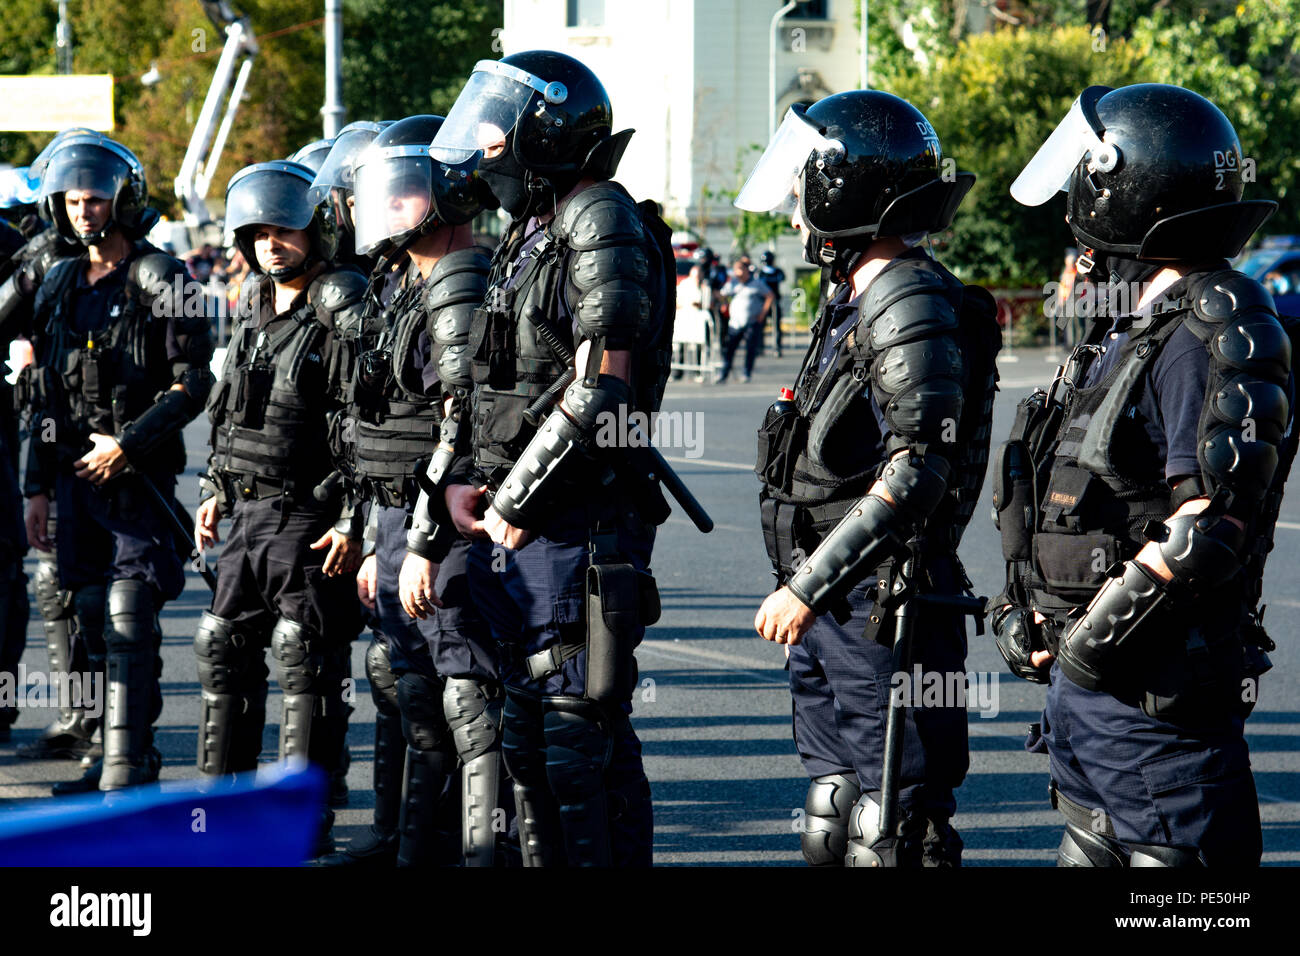 Bucharest, Romania - 10 August 2018: Riot police prepared to supress the manifestation during the protest of Diaspora when tens of thousands of protes - Stock Image